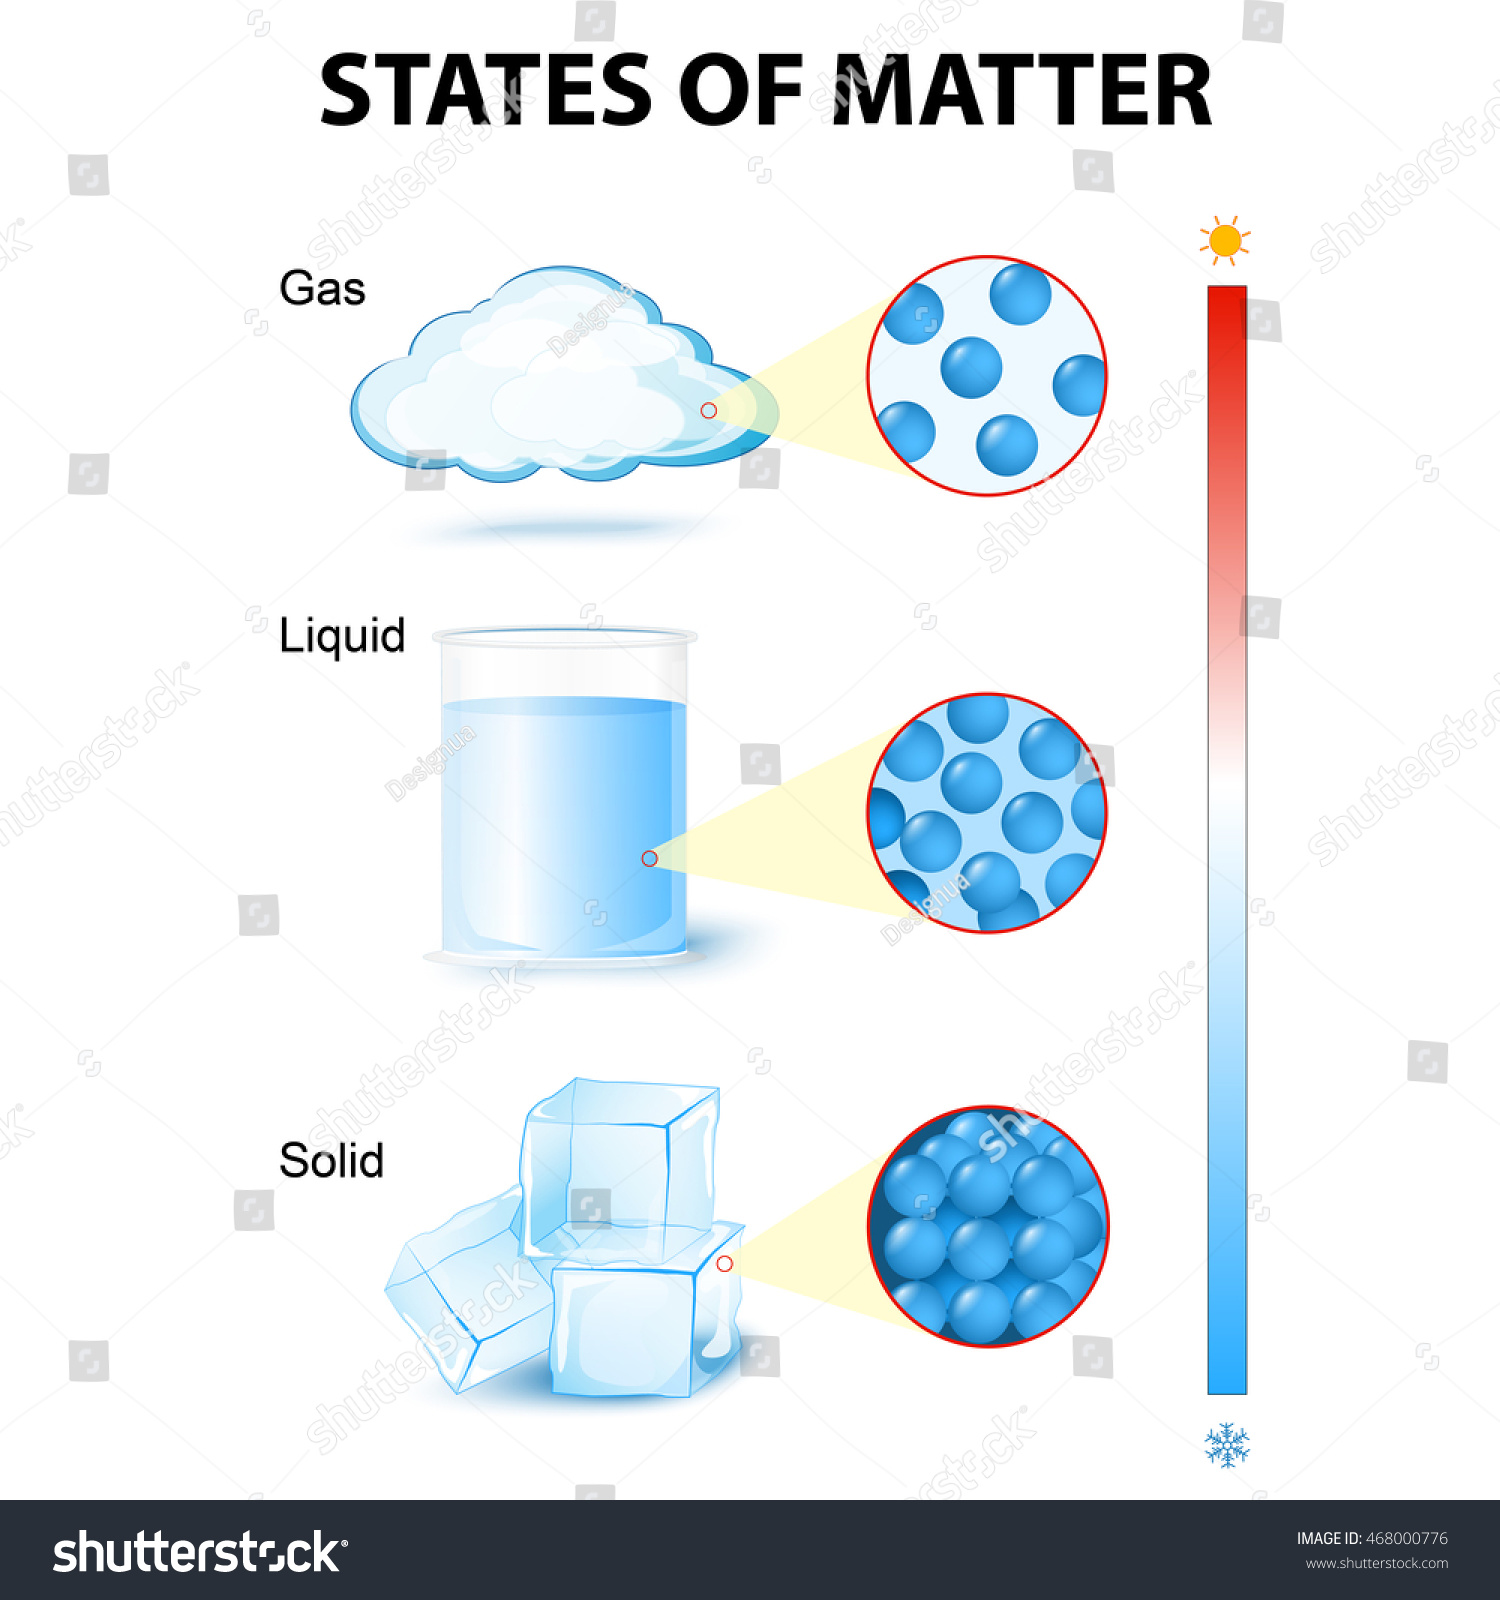 States Of Matter For Example Water